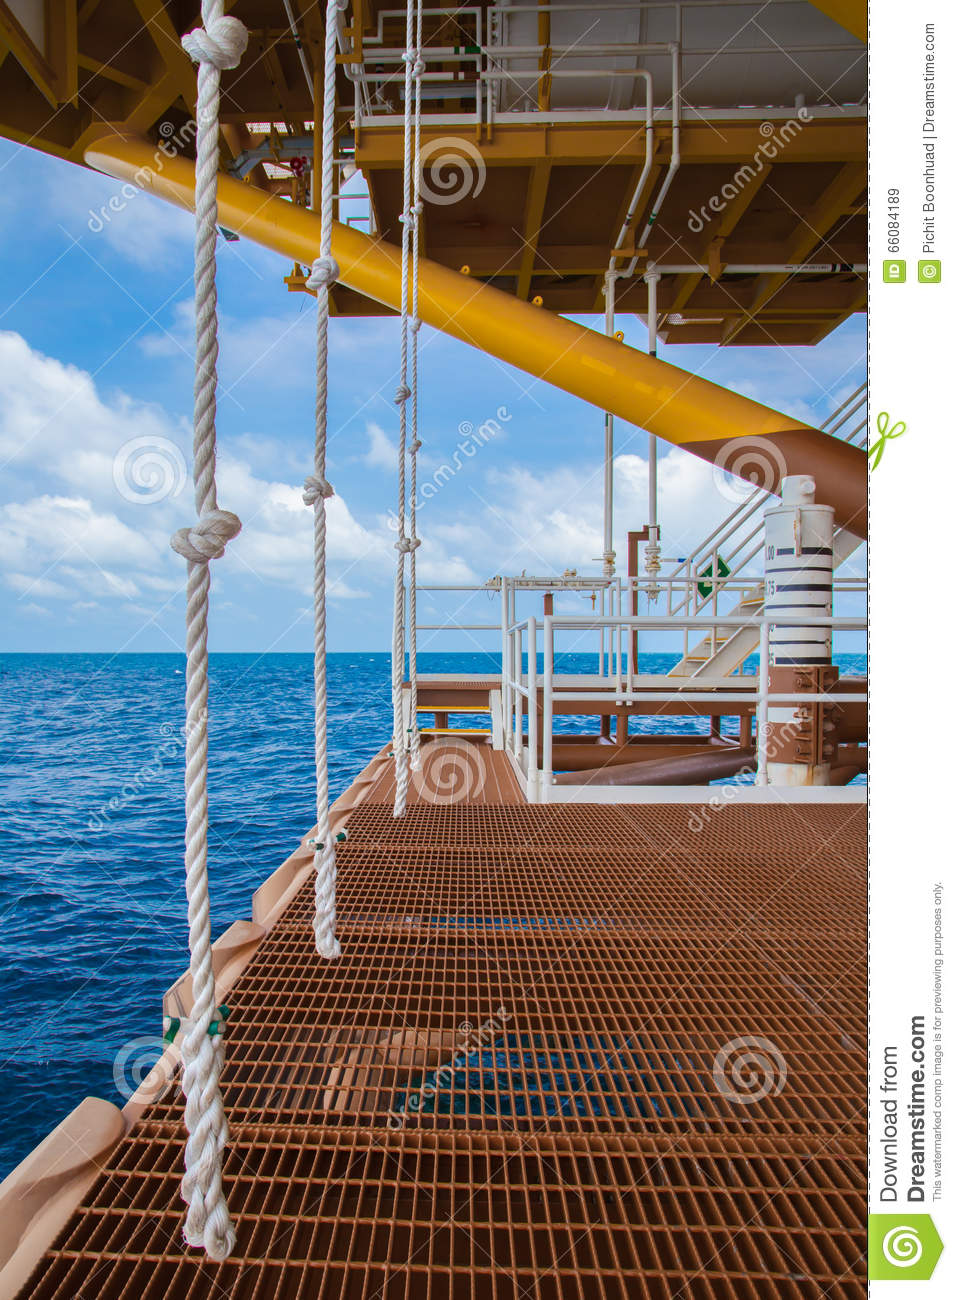 Swing rope at boat landing stock image. Image of dirty - 66084189